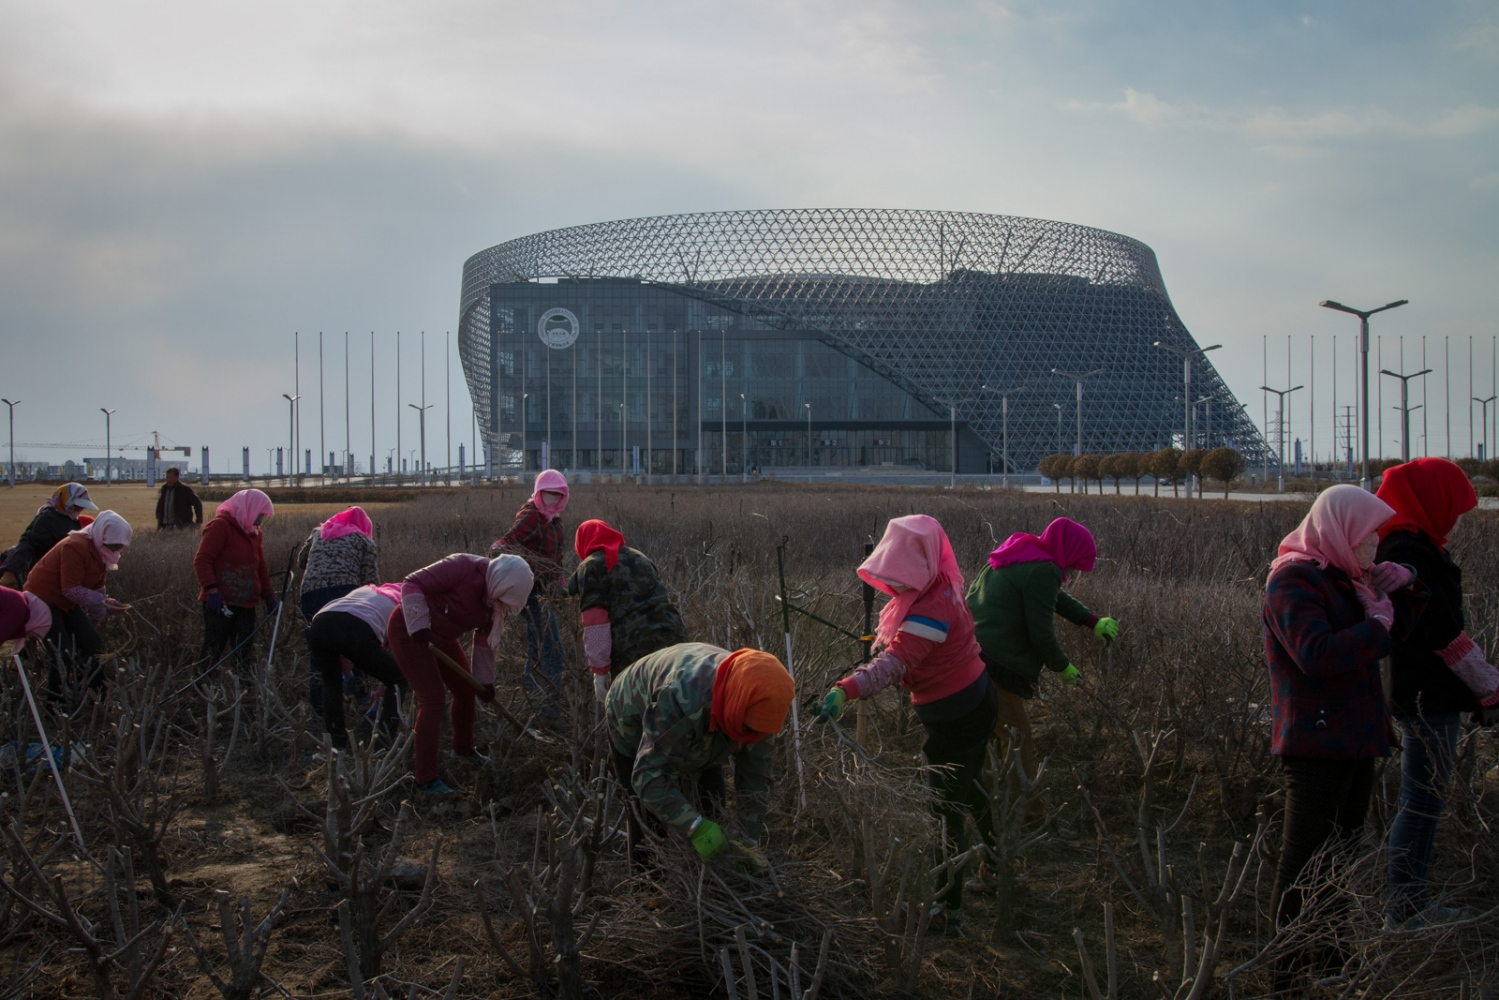 Workers attend to the landscaping in front of Ningxia International Hall, which was completed in 2015 and was the site of the China-Arab States Expo the same year.